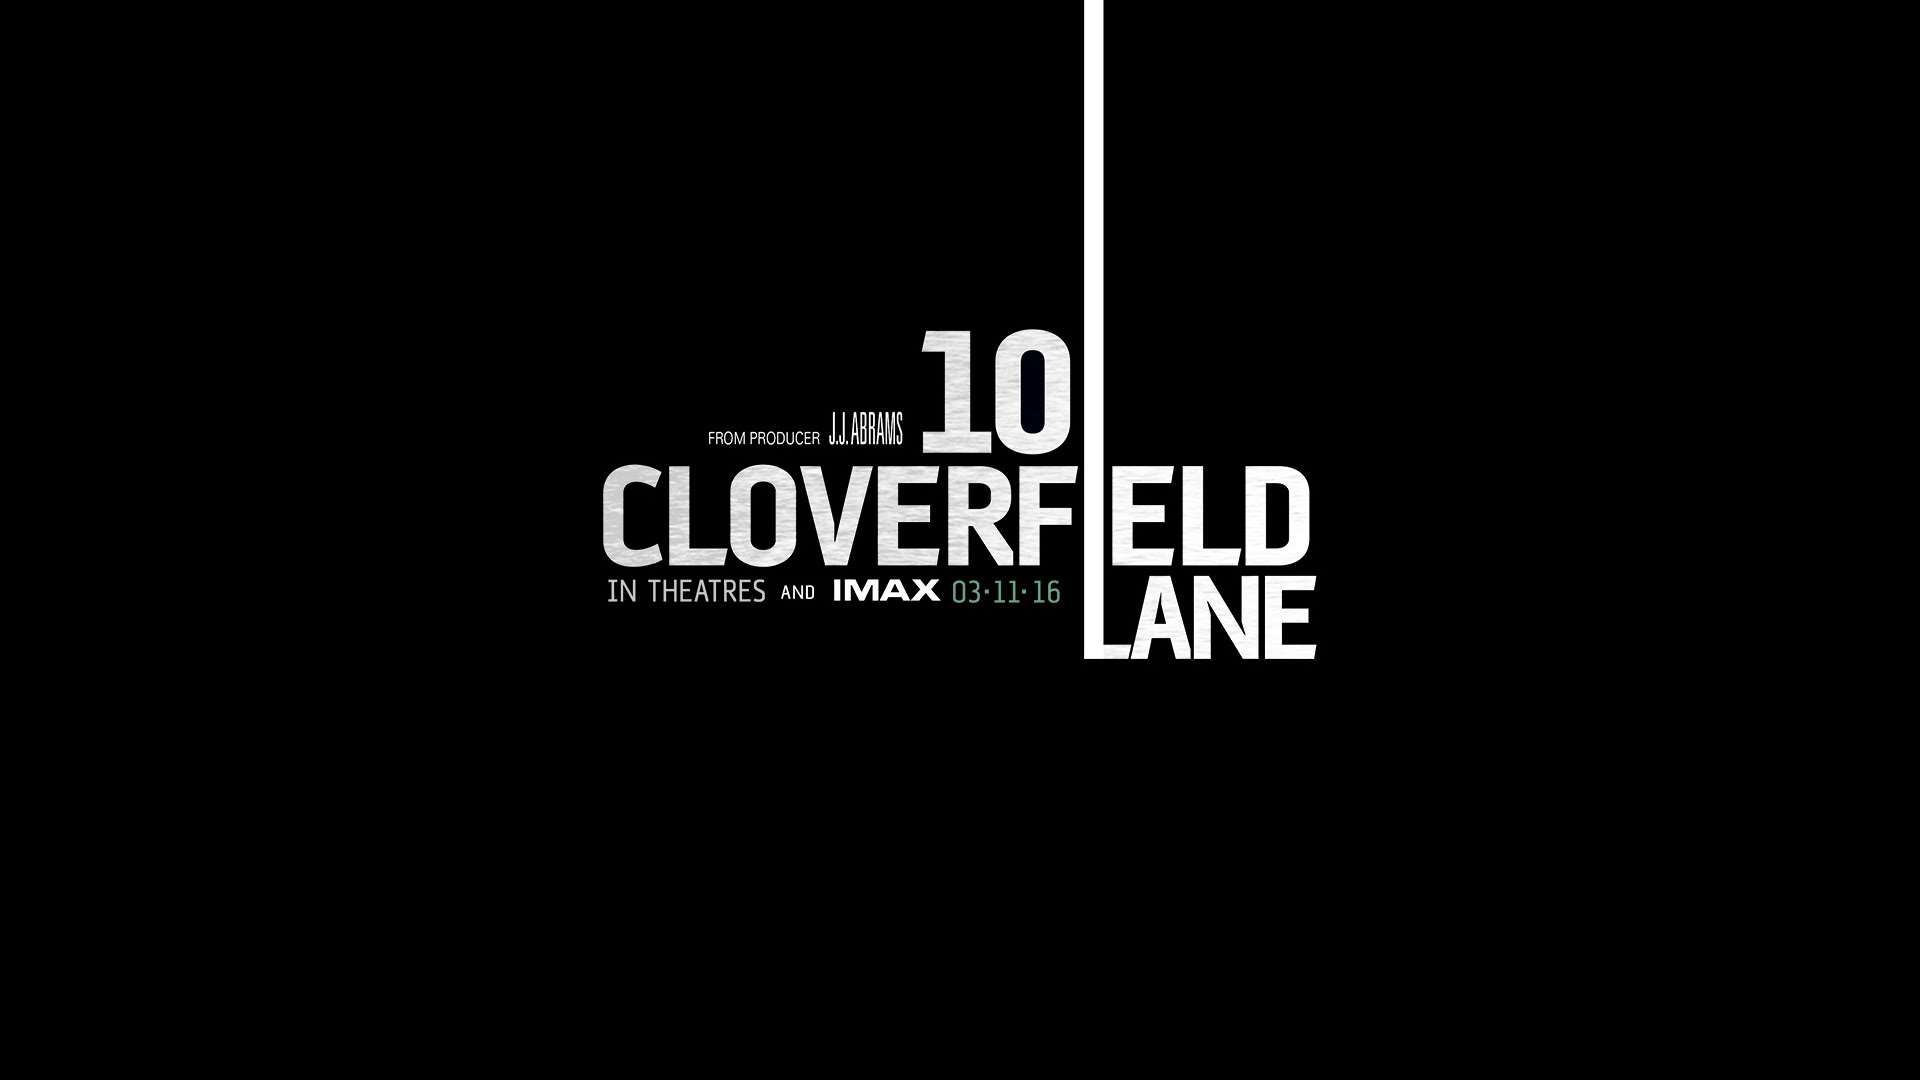 Cloverfield Lane Wallpaper   HD Wallpapers Backgrounds of Your Choice 1920x1080